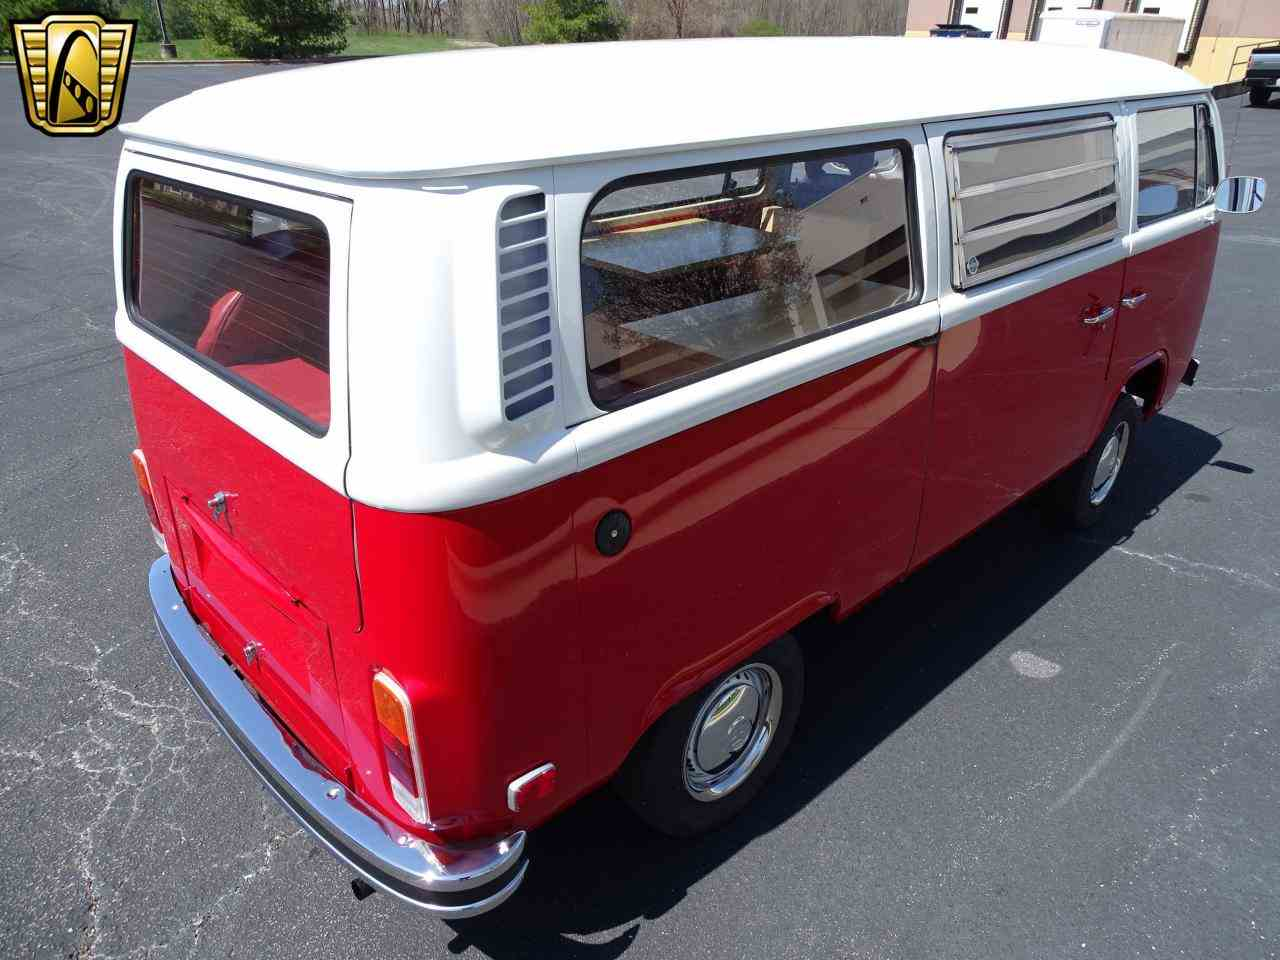 Large Picture of 1974 Westfalia Camper - $34,995.00 Offered by Gateway Classic Cars - St. Louis - NEEL